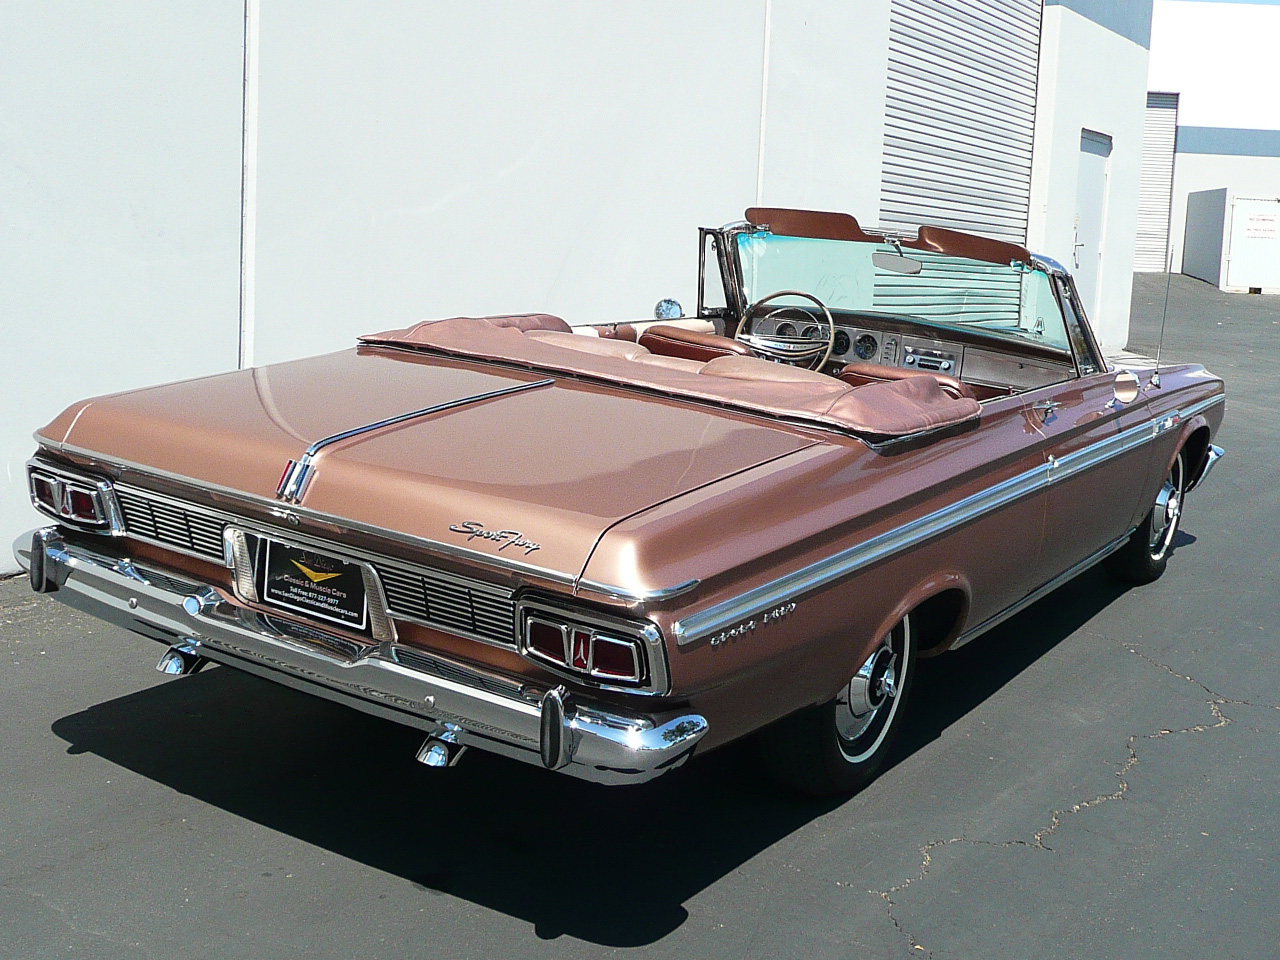 1964 PLYMOUTH SPORT FURY CONVERTIBLE - Rear 3/4 - 80987